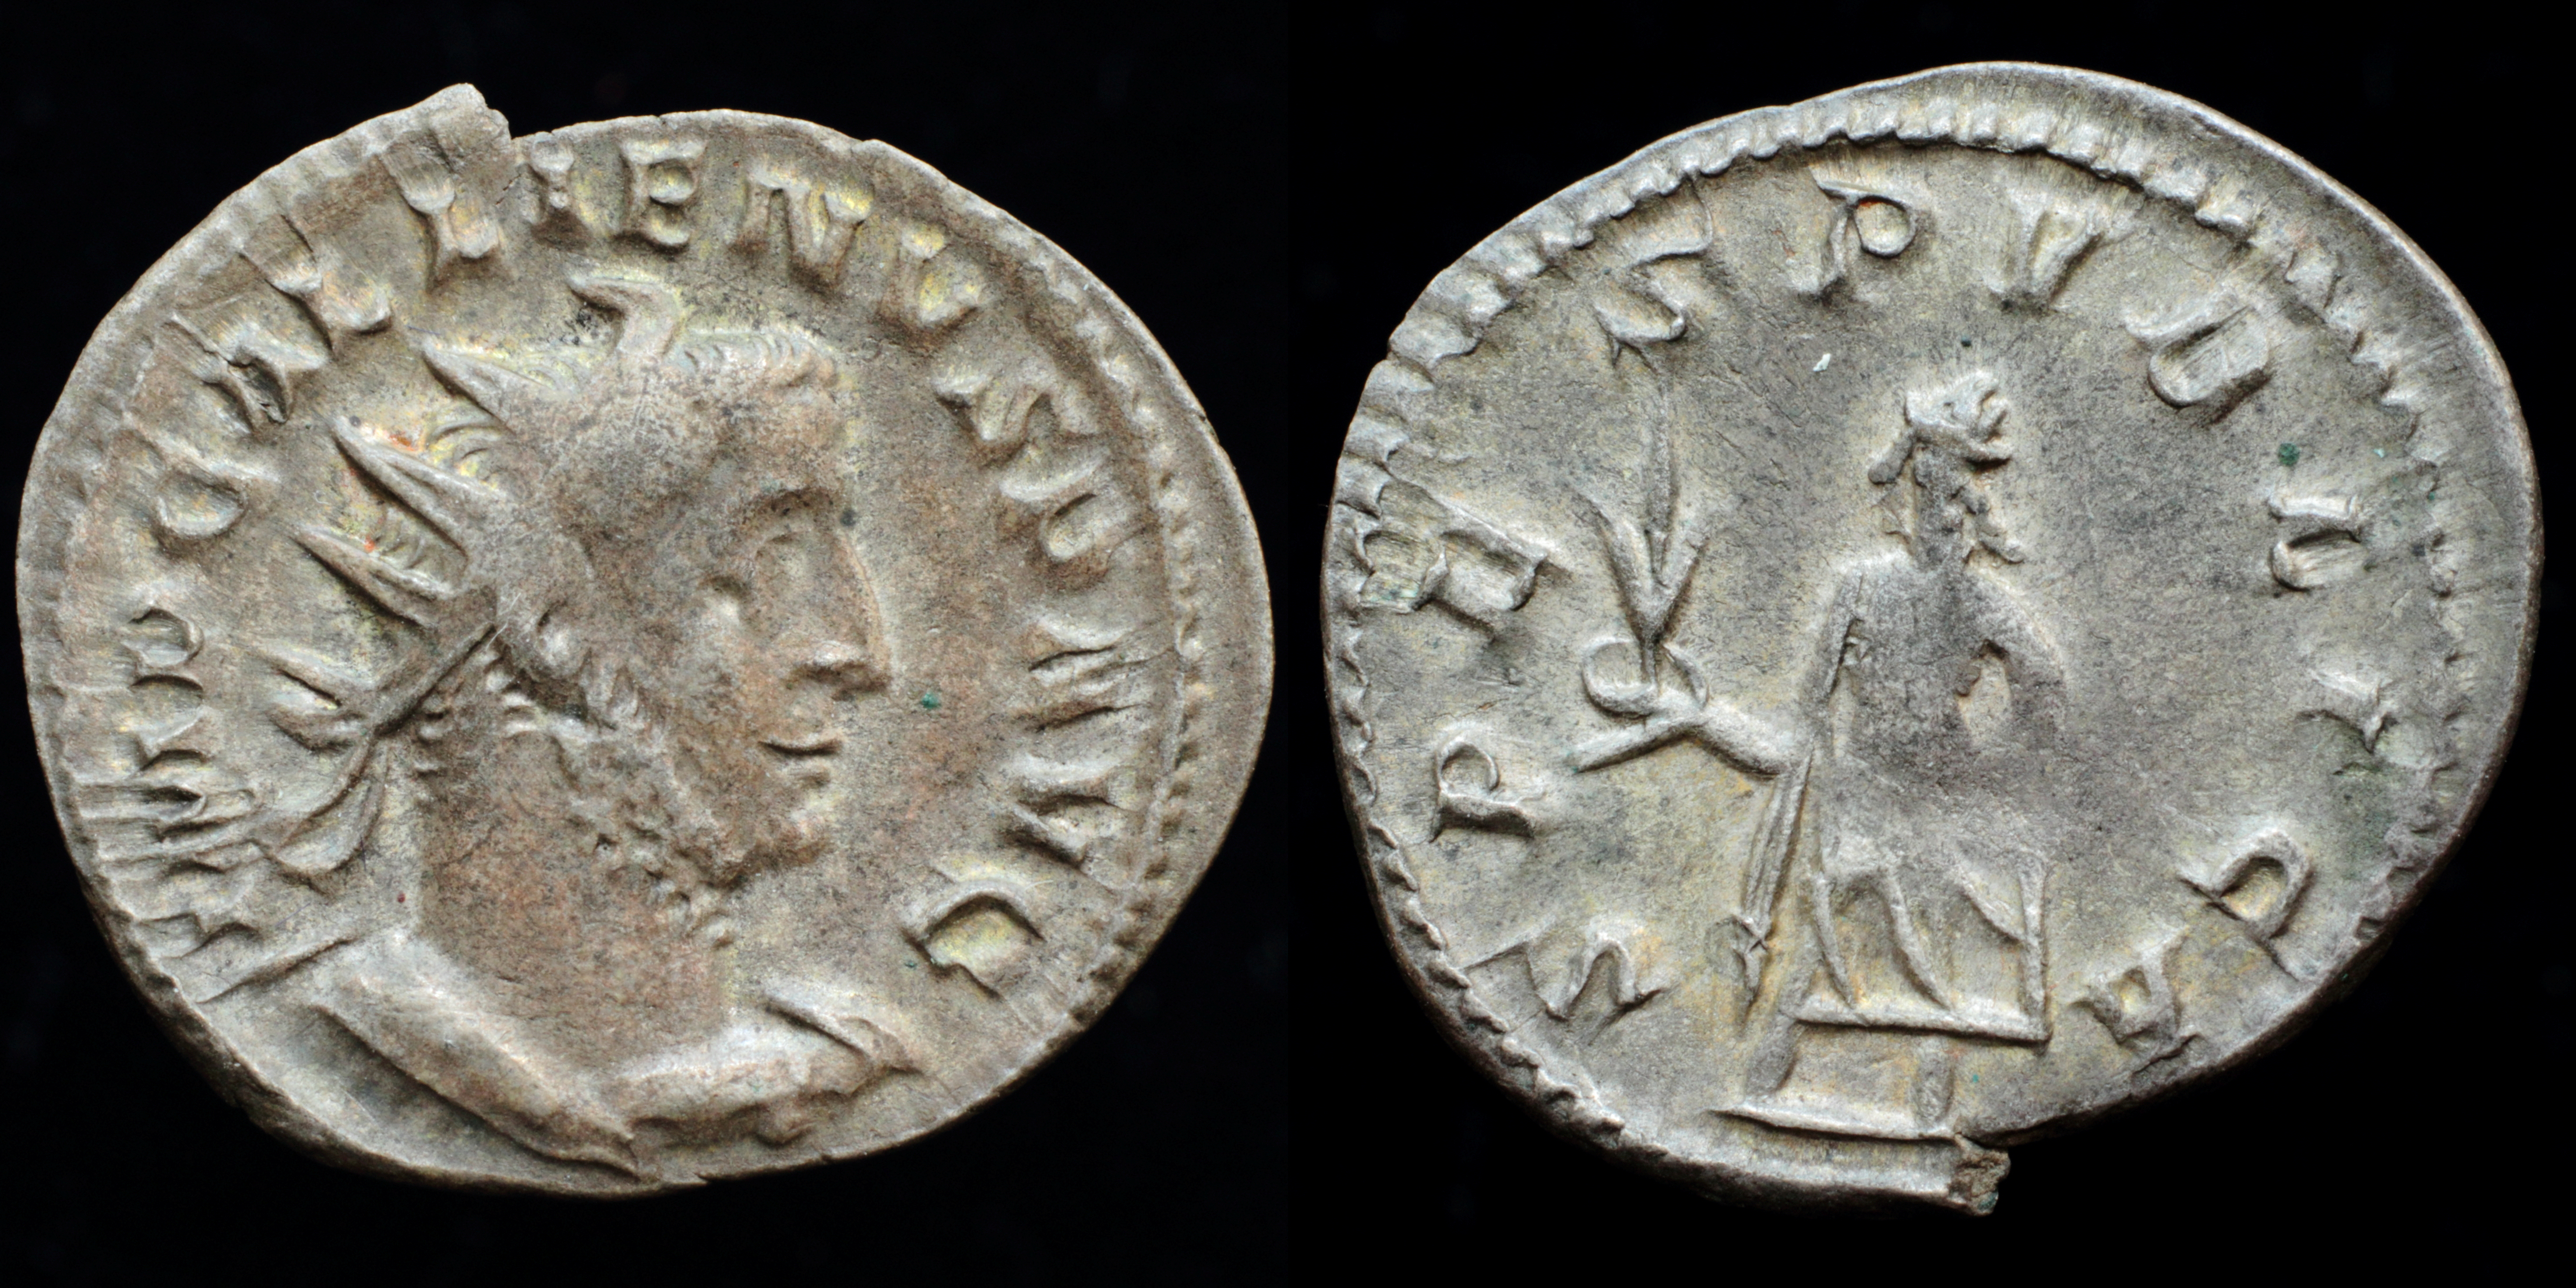 /Files/Images/Coinsite/CoinDB/Gallienus_Spes_Pvblica.jpg